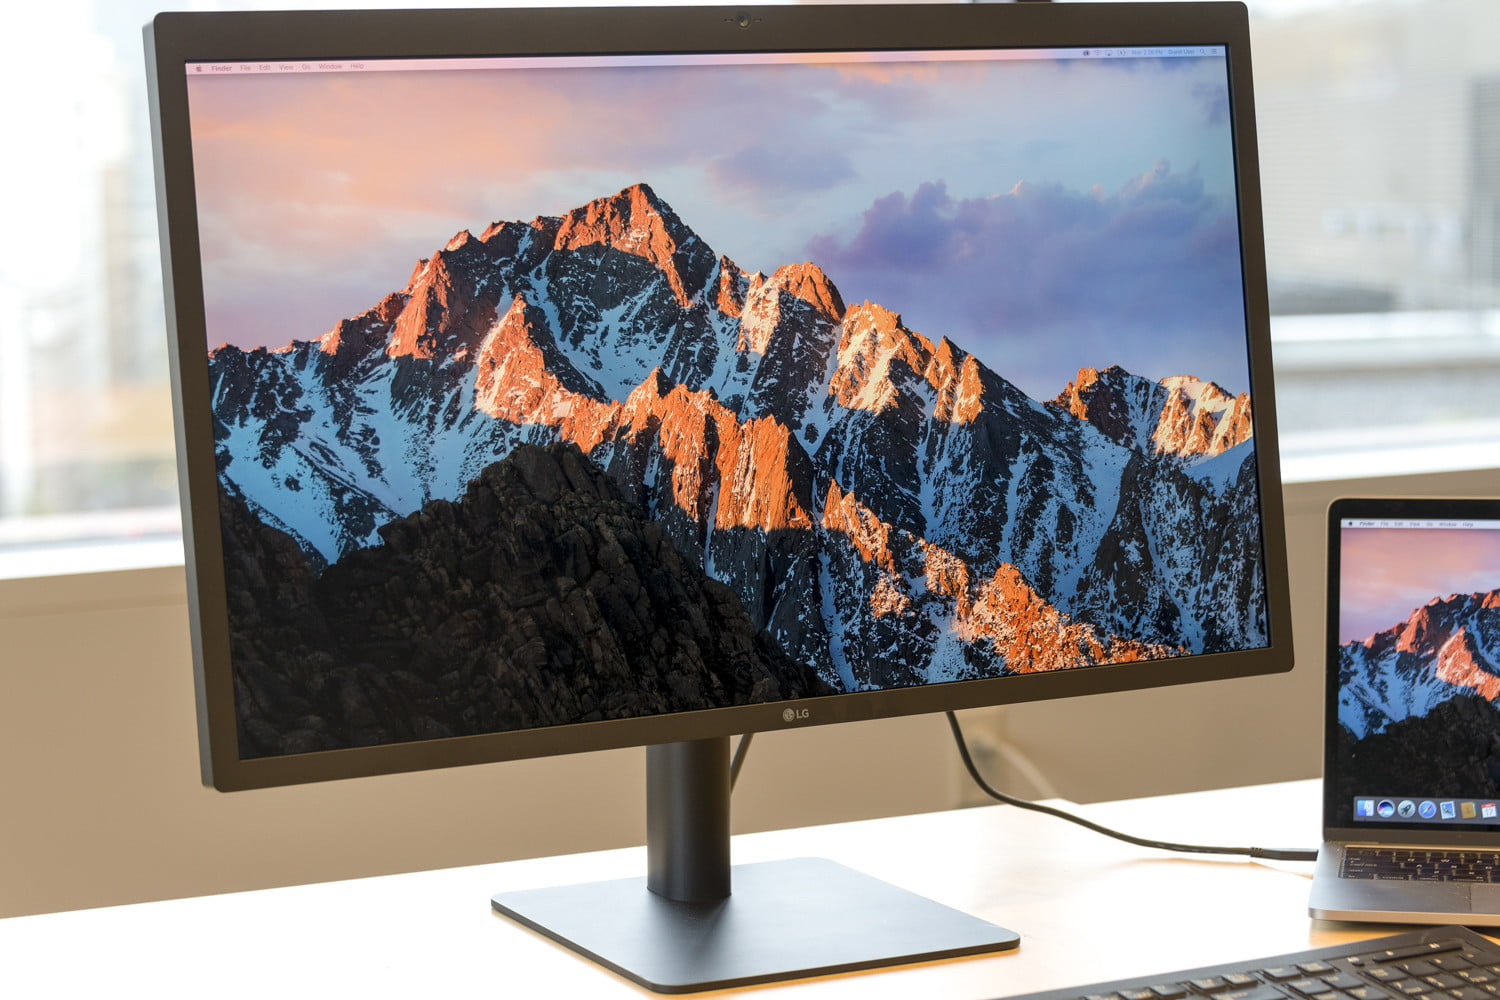 How to clean your computer monitor